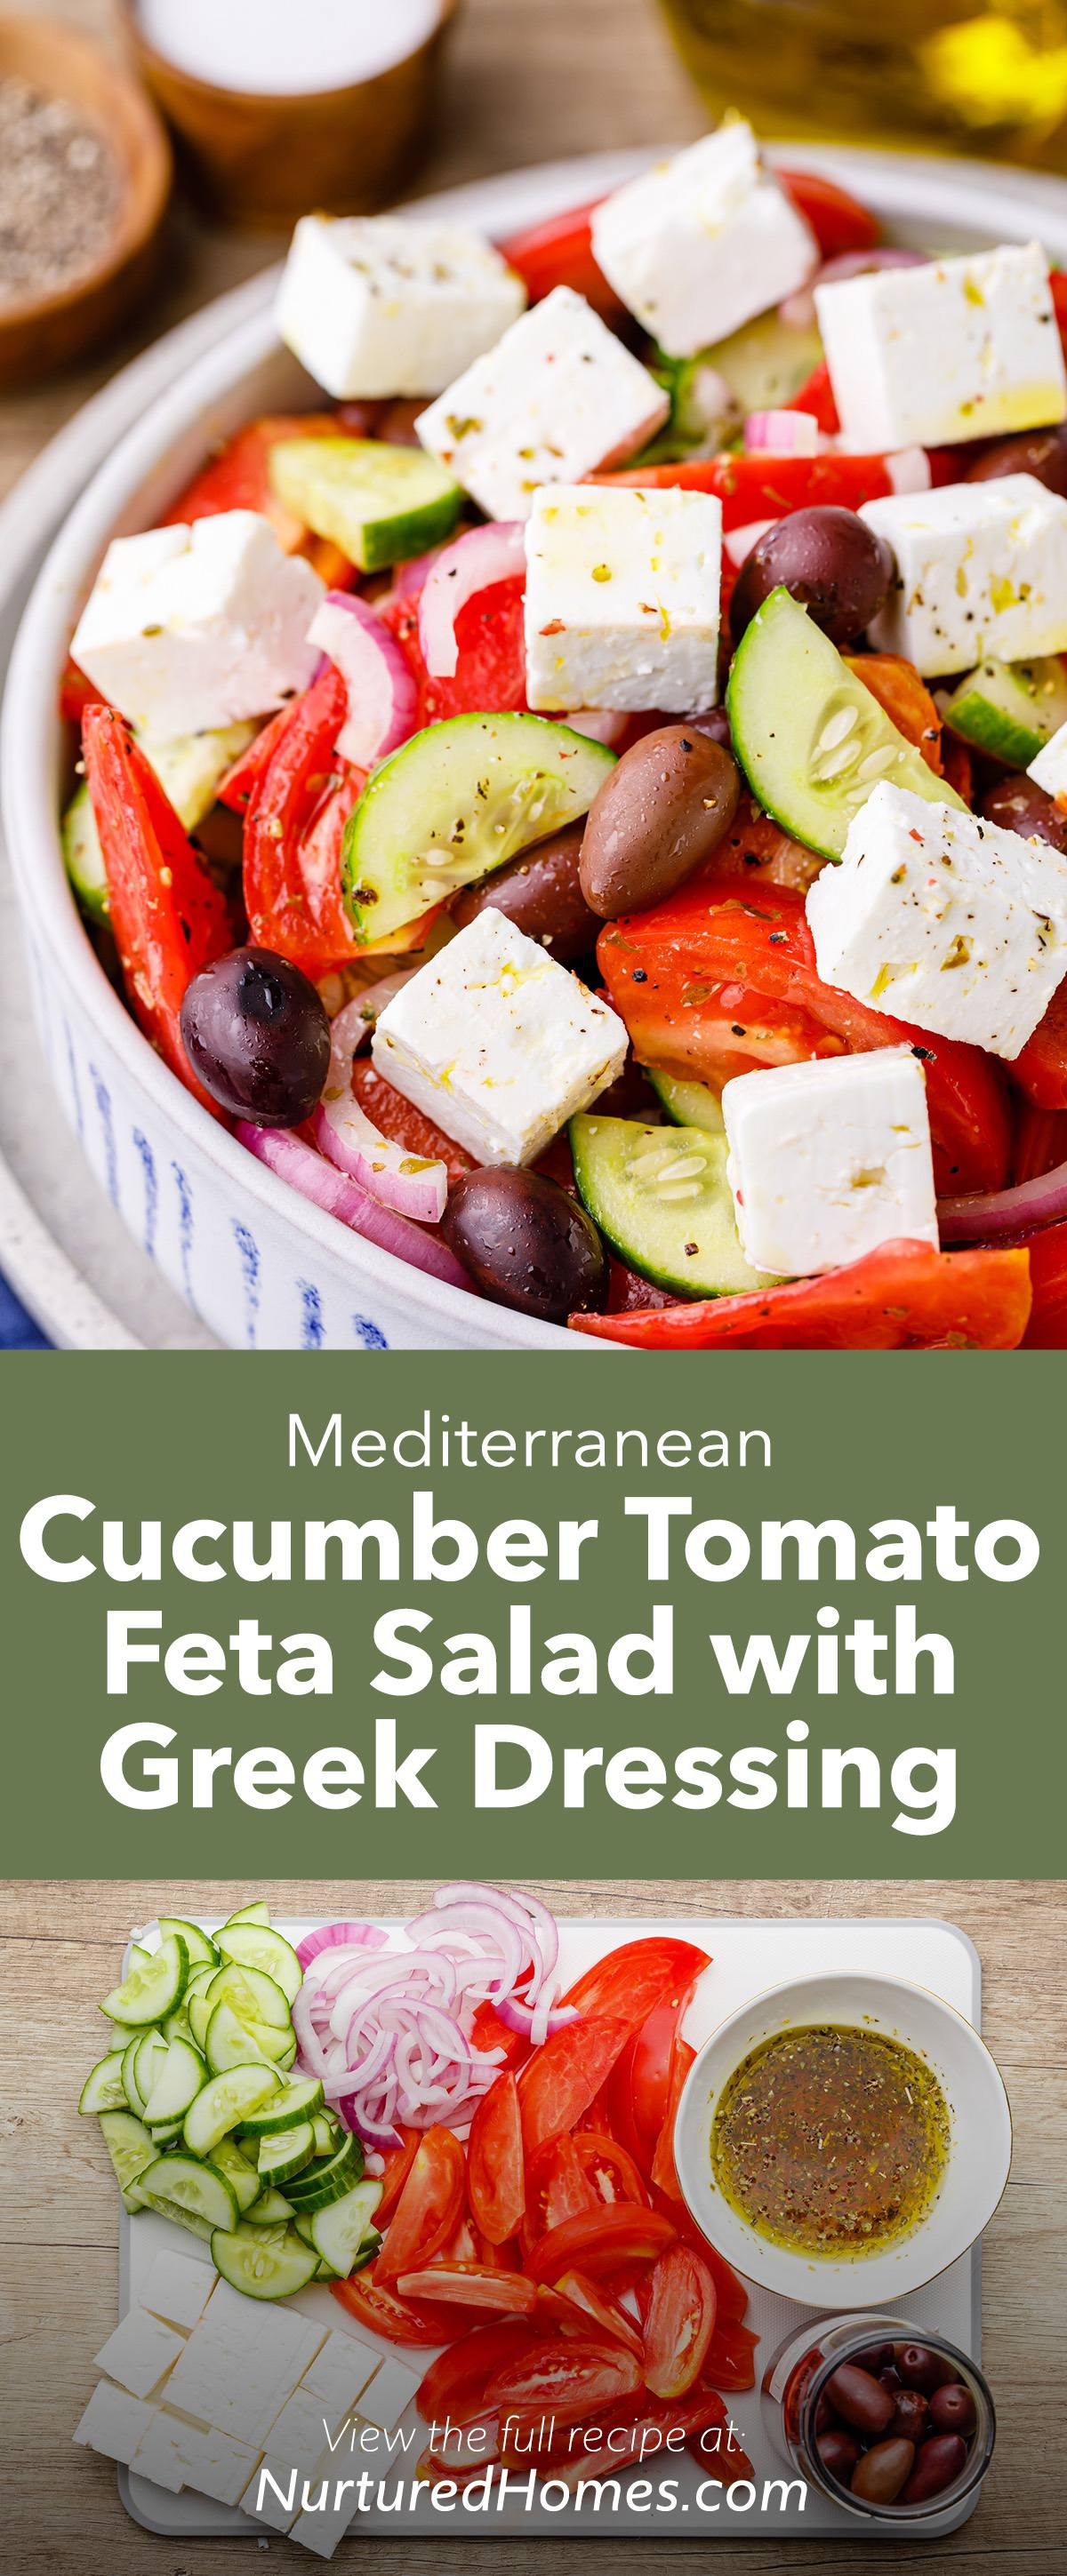 Mediterranean Cucumber Tomato Feta Salad with Homemade Greek Dressing